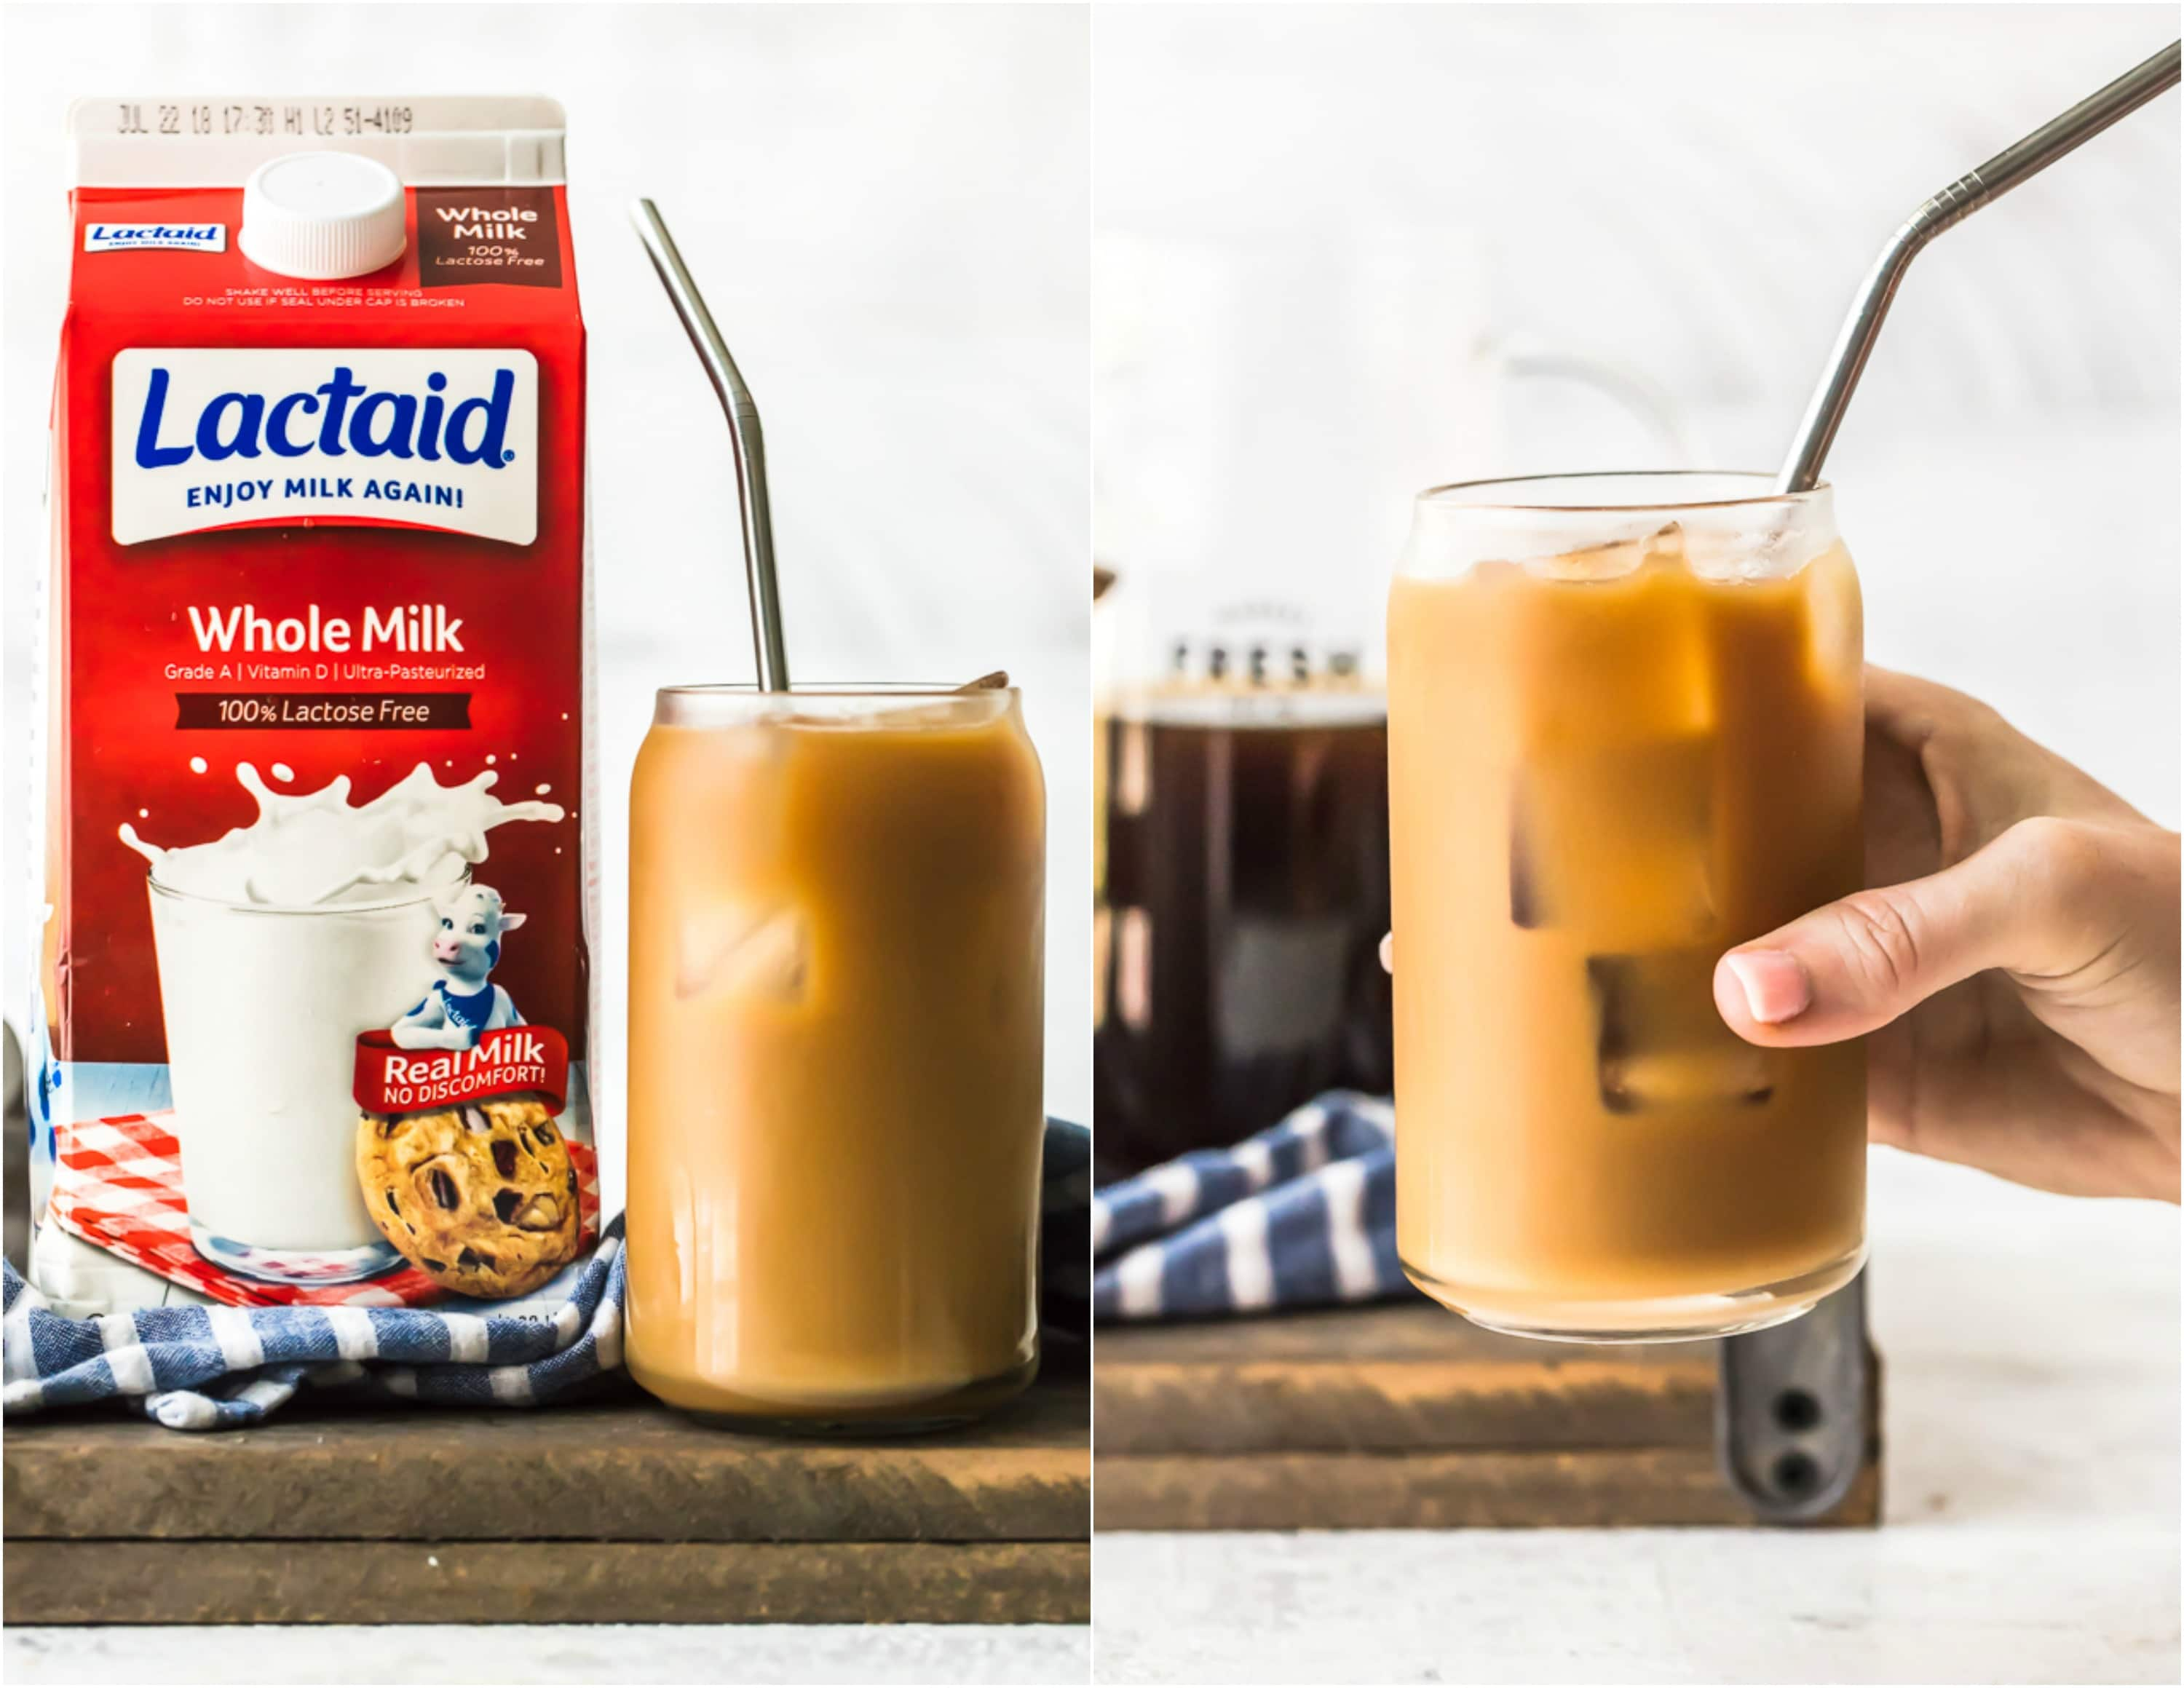 French Vanilla Iced Coffee with Homemade Vanilla Syrup is the ultimate delicious drink to kick start any day or week. We are all busy and on the go, and having the right amount of creamy caffeine made to order is the perfect solution for going all day every day. I am in love with this Homemade Vanilla Iced Coffee and make a big batch every Monday!